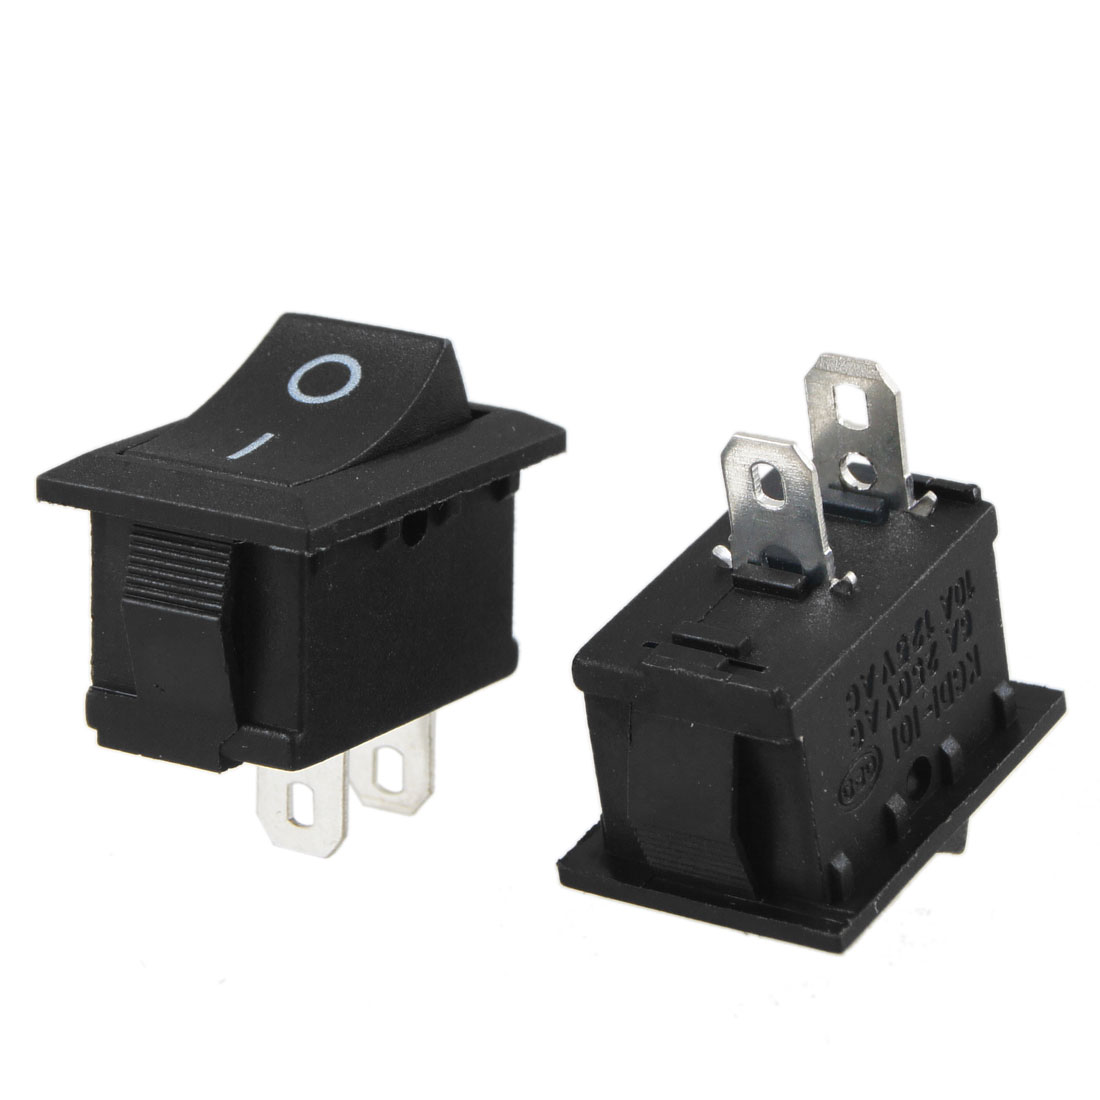 2 Pcs Black AC 250V 6A 2 Pin SPST On/off Snap-In Boat Rocker Switch